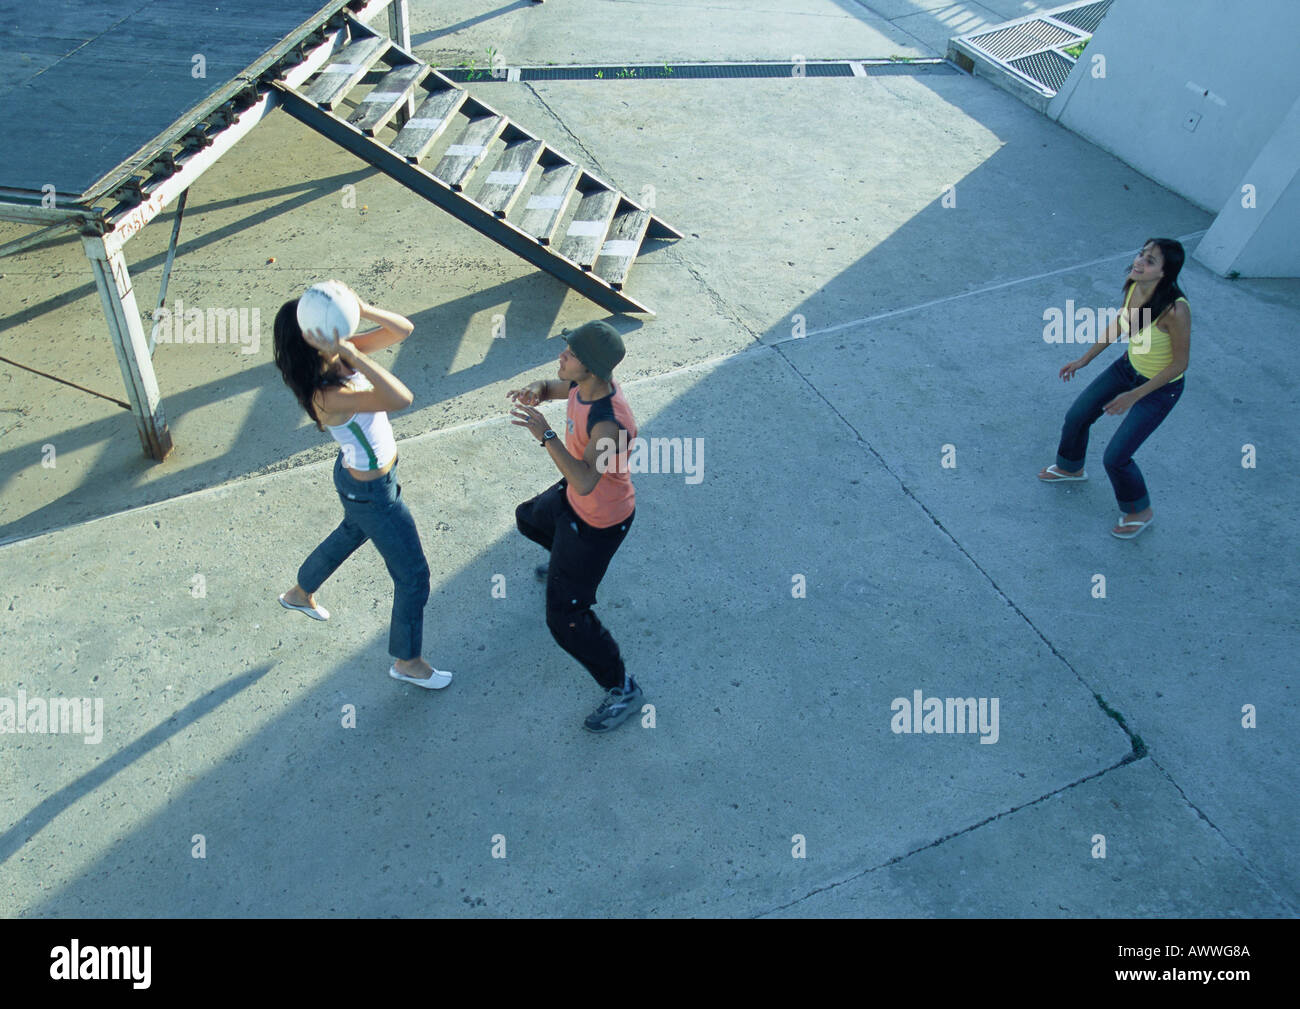 Young people playing with ball, high angle view - Stock Image